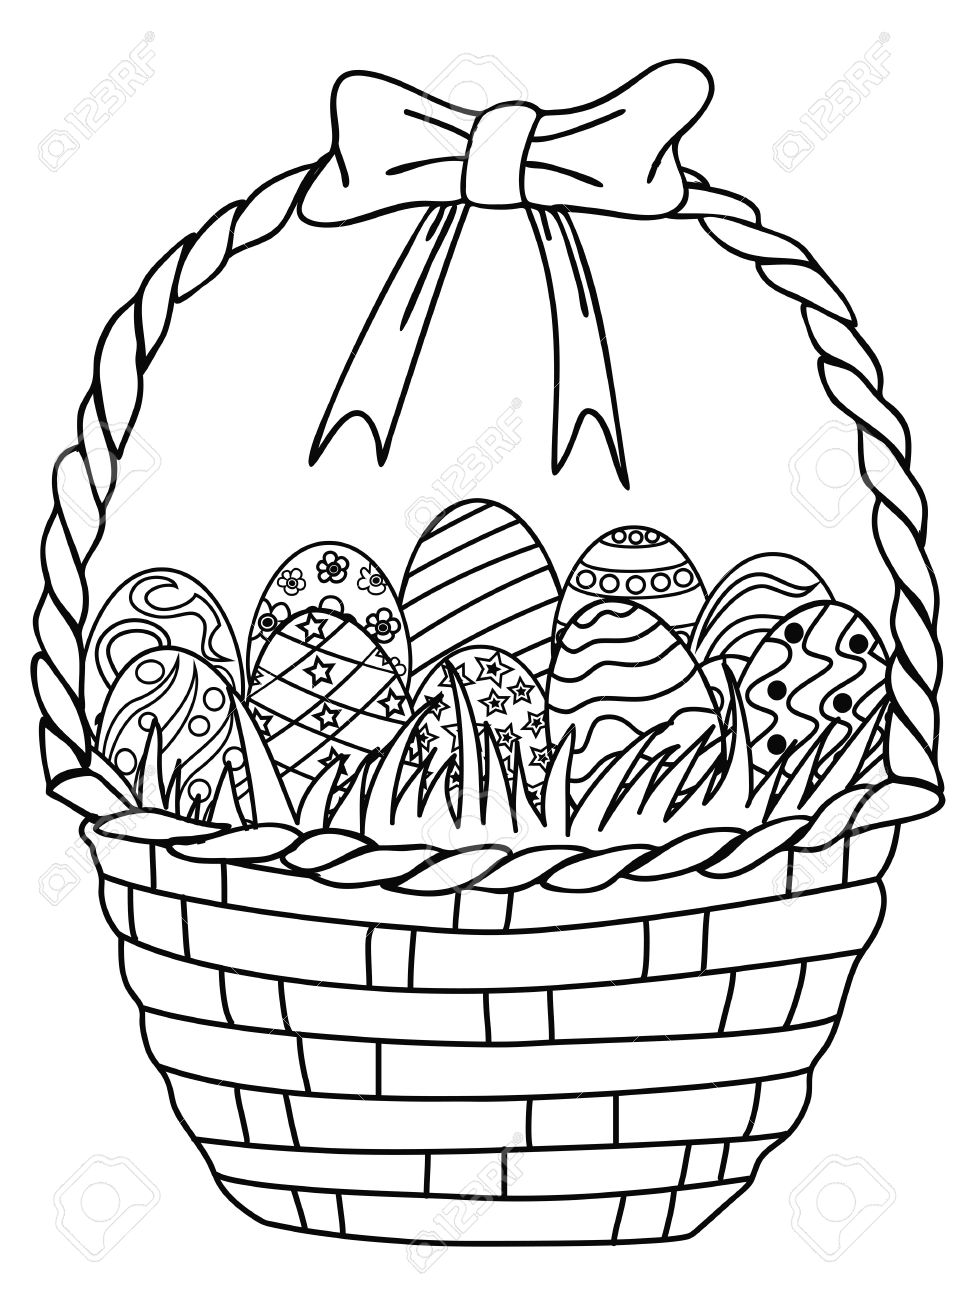 Easter Egg Basket Drawing at GetDrawings.com | Free for personal use ...